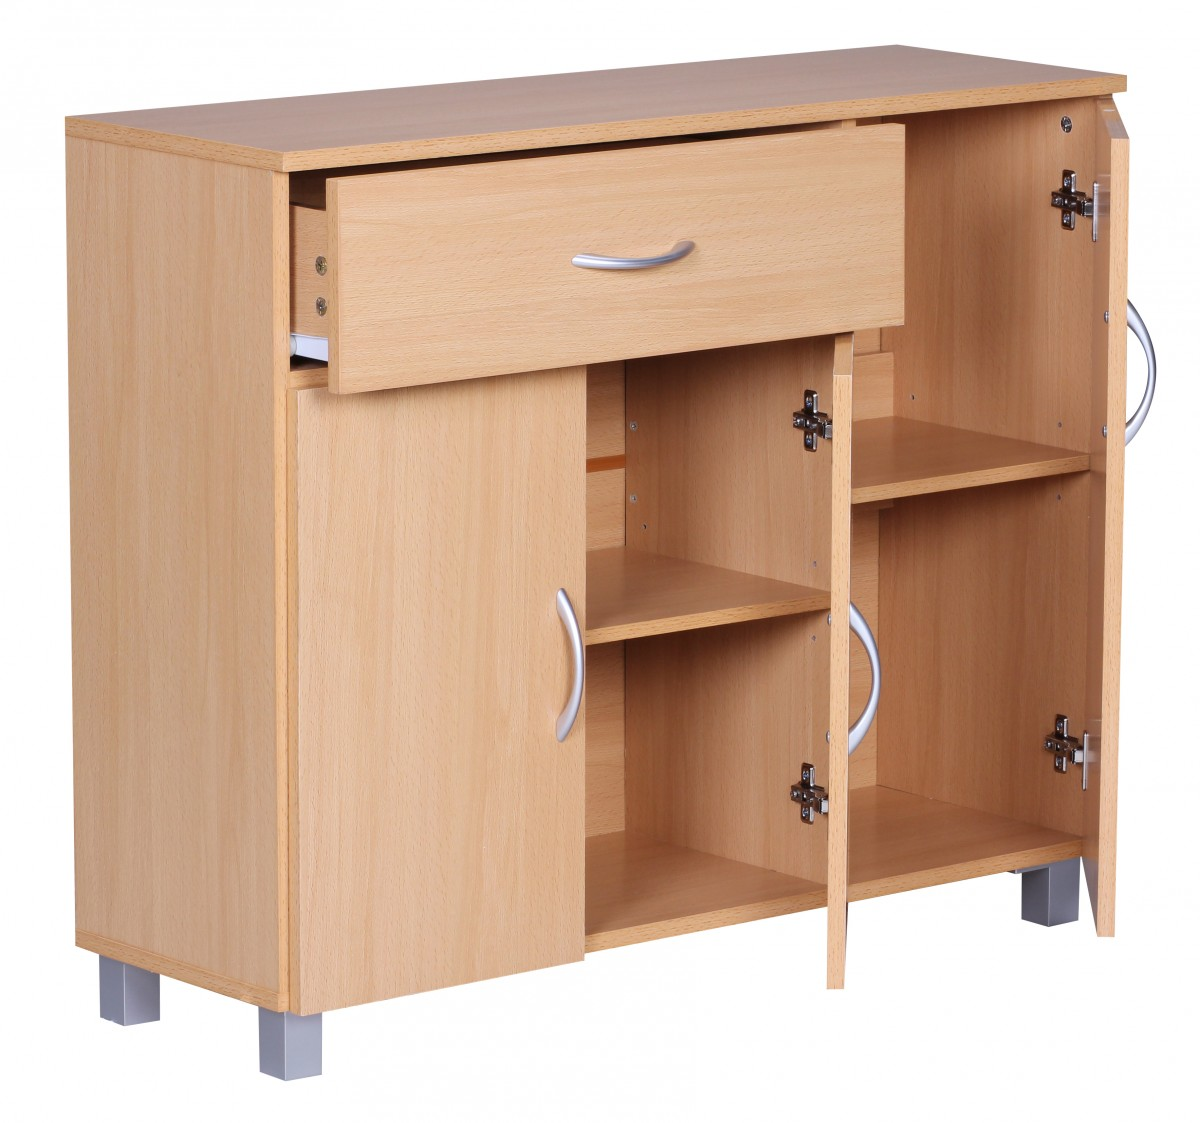 wohnling sideboard doors drawer cupboard buffet furniture cabinet storage beech ebay. Black Bedroom Furniture Sets. Home Design Ideas